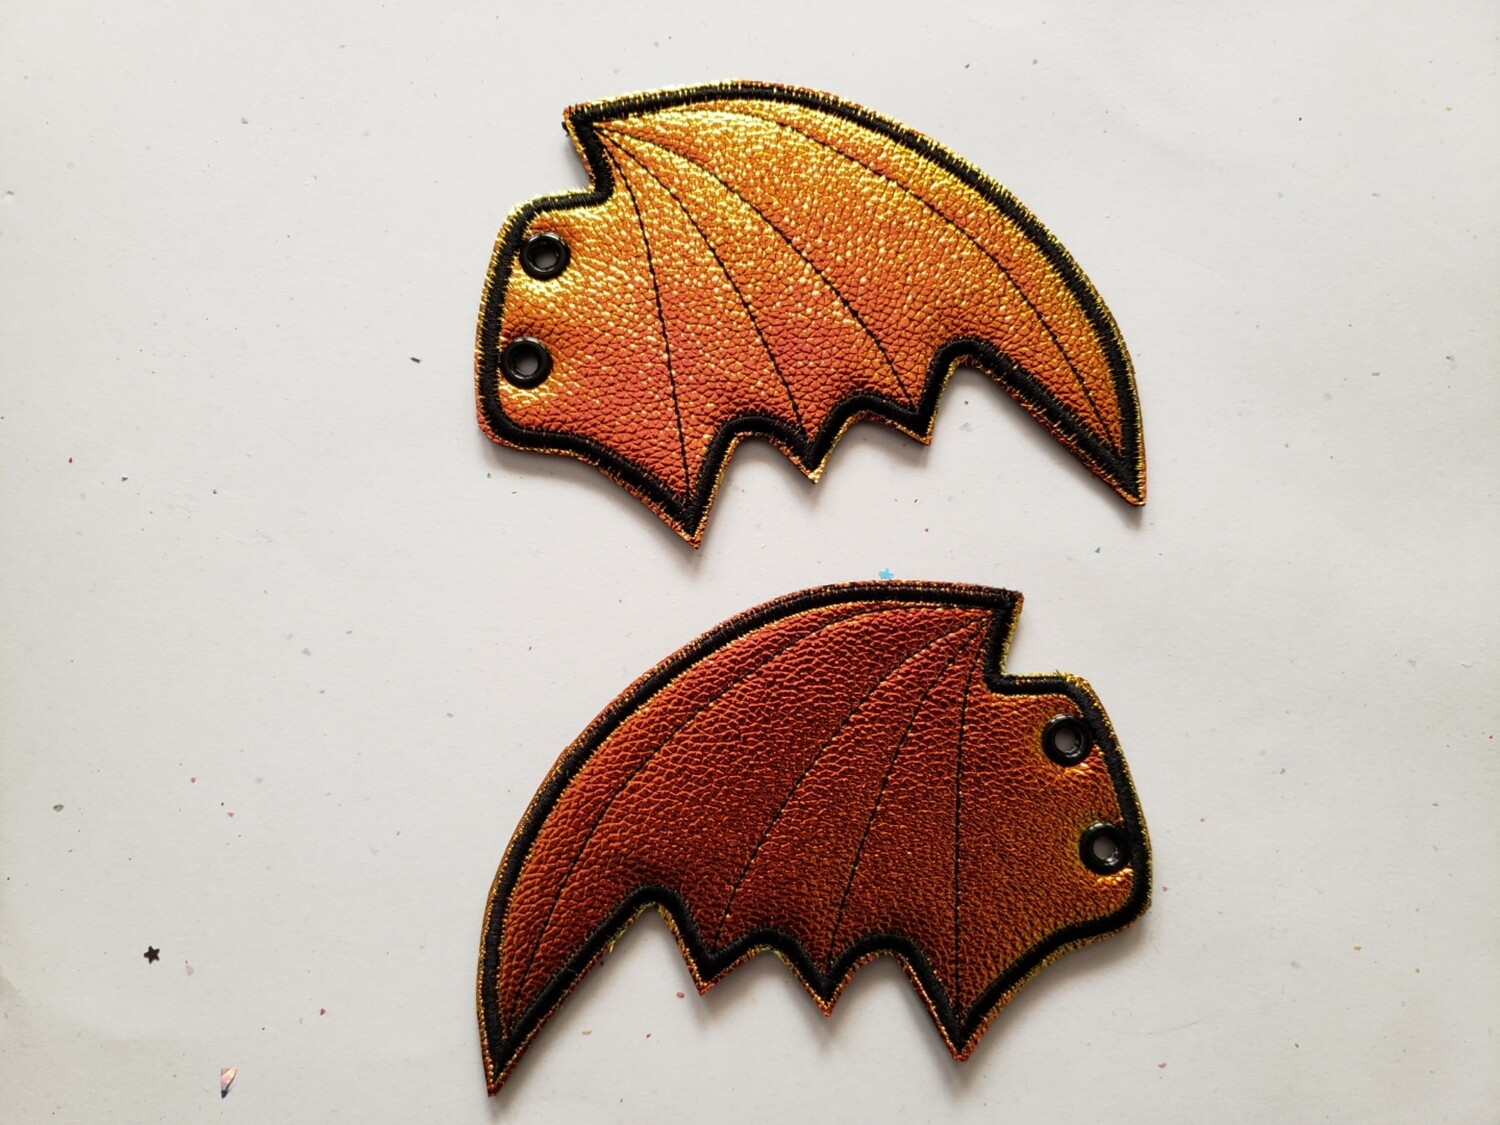 Bat skate wings in orange metallic shift